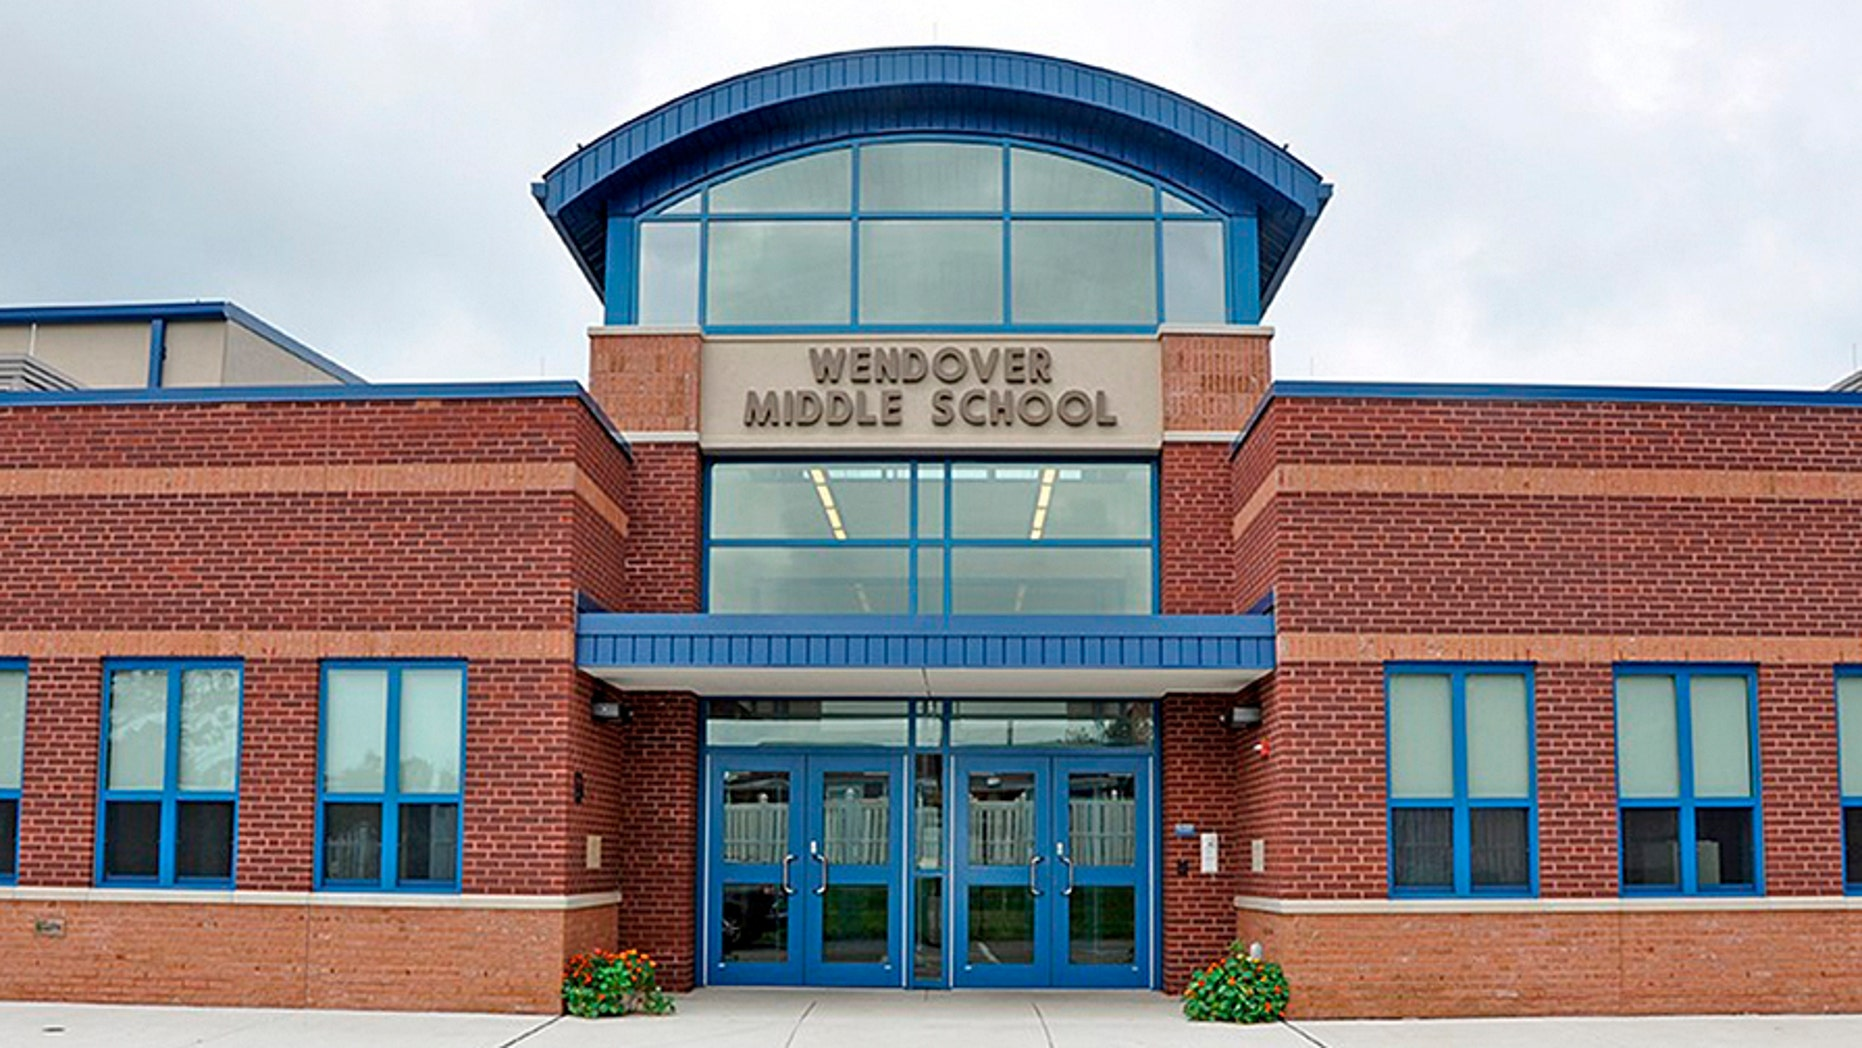 Officials canceled classes at the Wendover Middle School after a student, who said he was sleepwalking, was discovered inside.